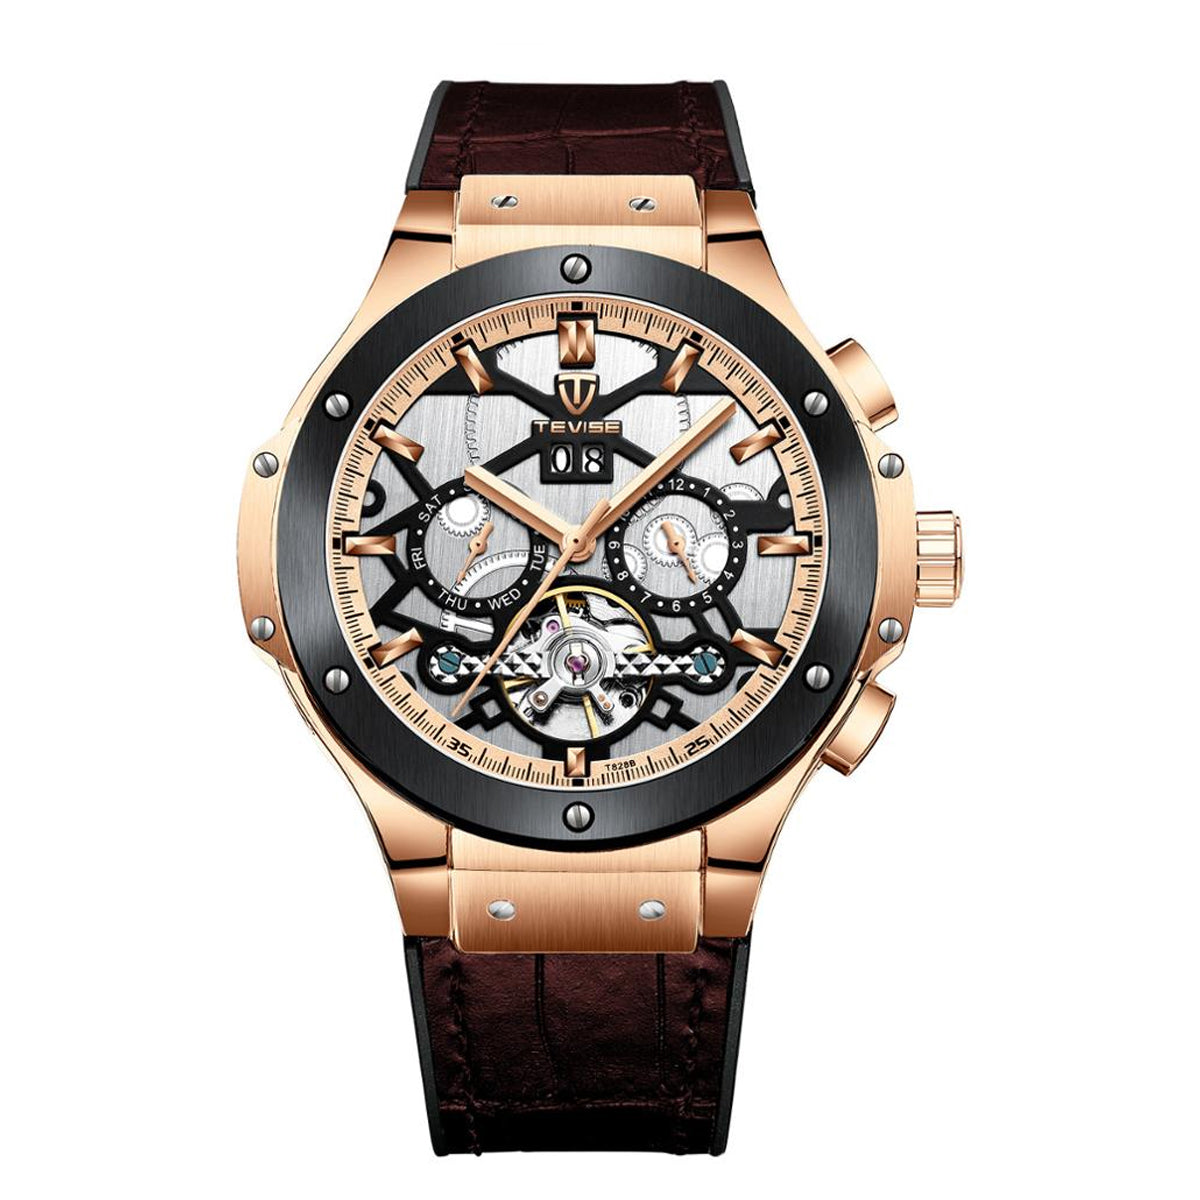 Men's Automatic Mechanical Fashion Watch with Leather Band